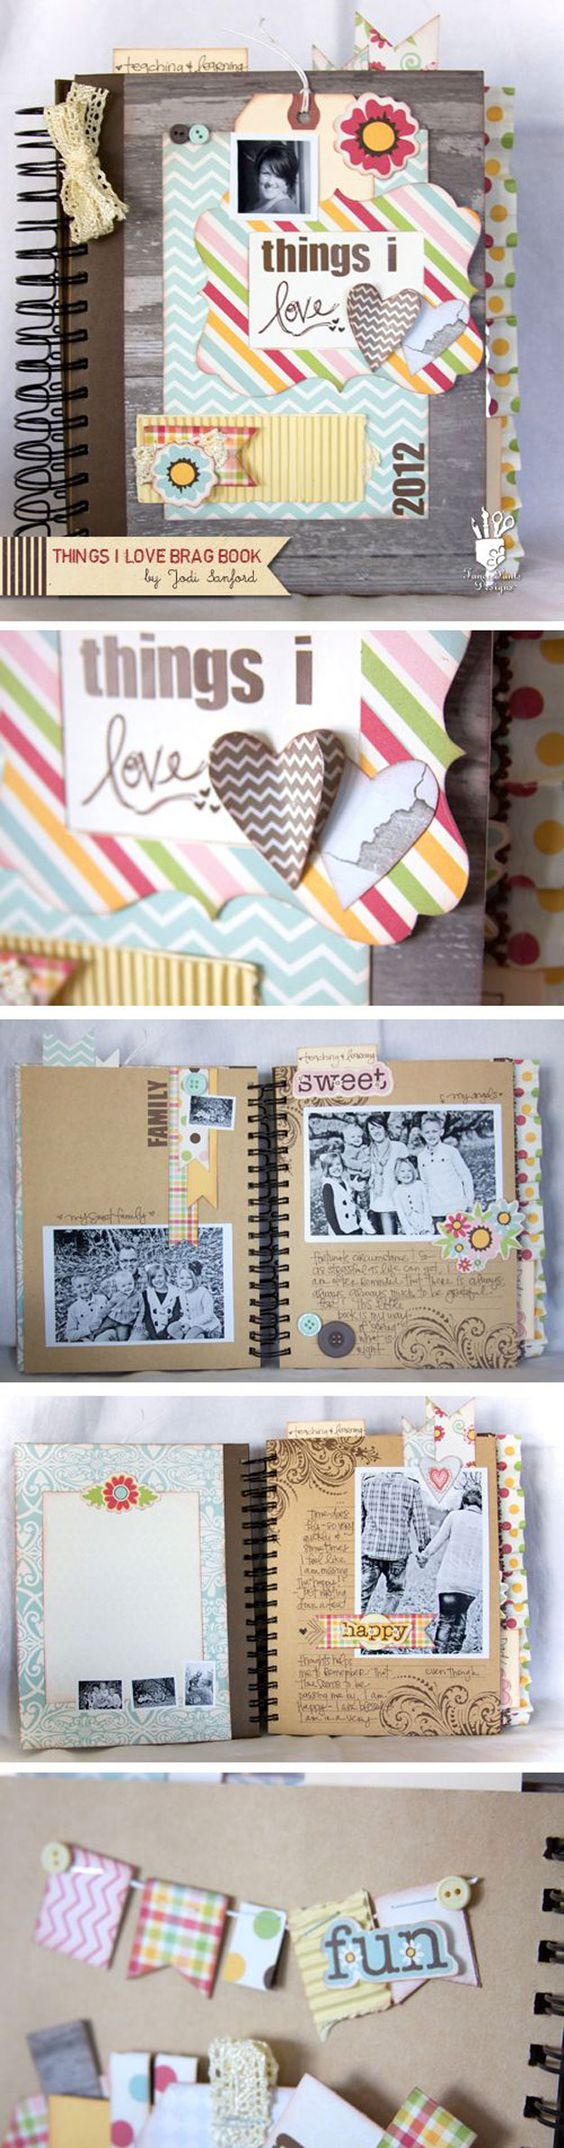 Scrapbook Ideas for Beginners | The Things I Love Scrapbook by DIY Ready at http://diyready.com/cool-scrapbook-ideas-you-should-make/: